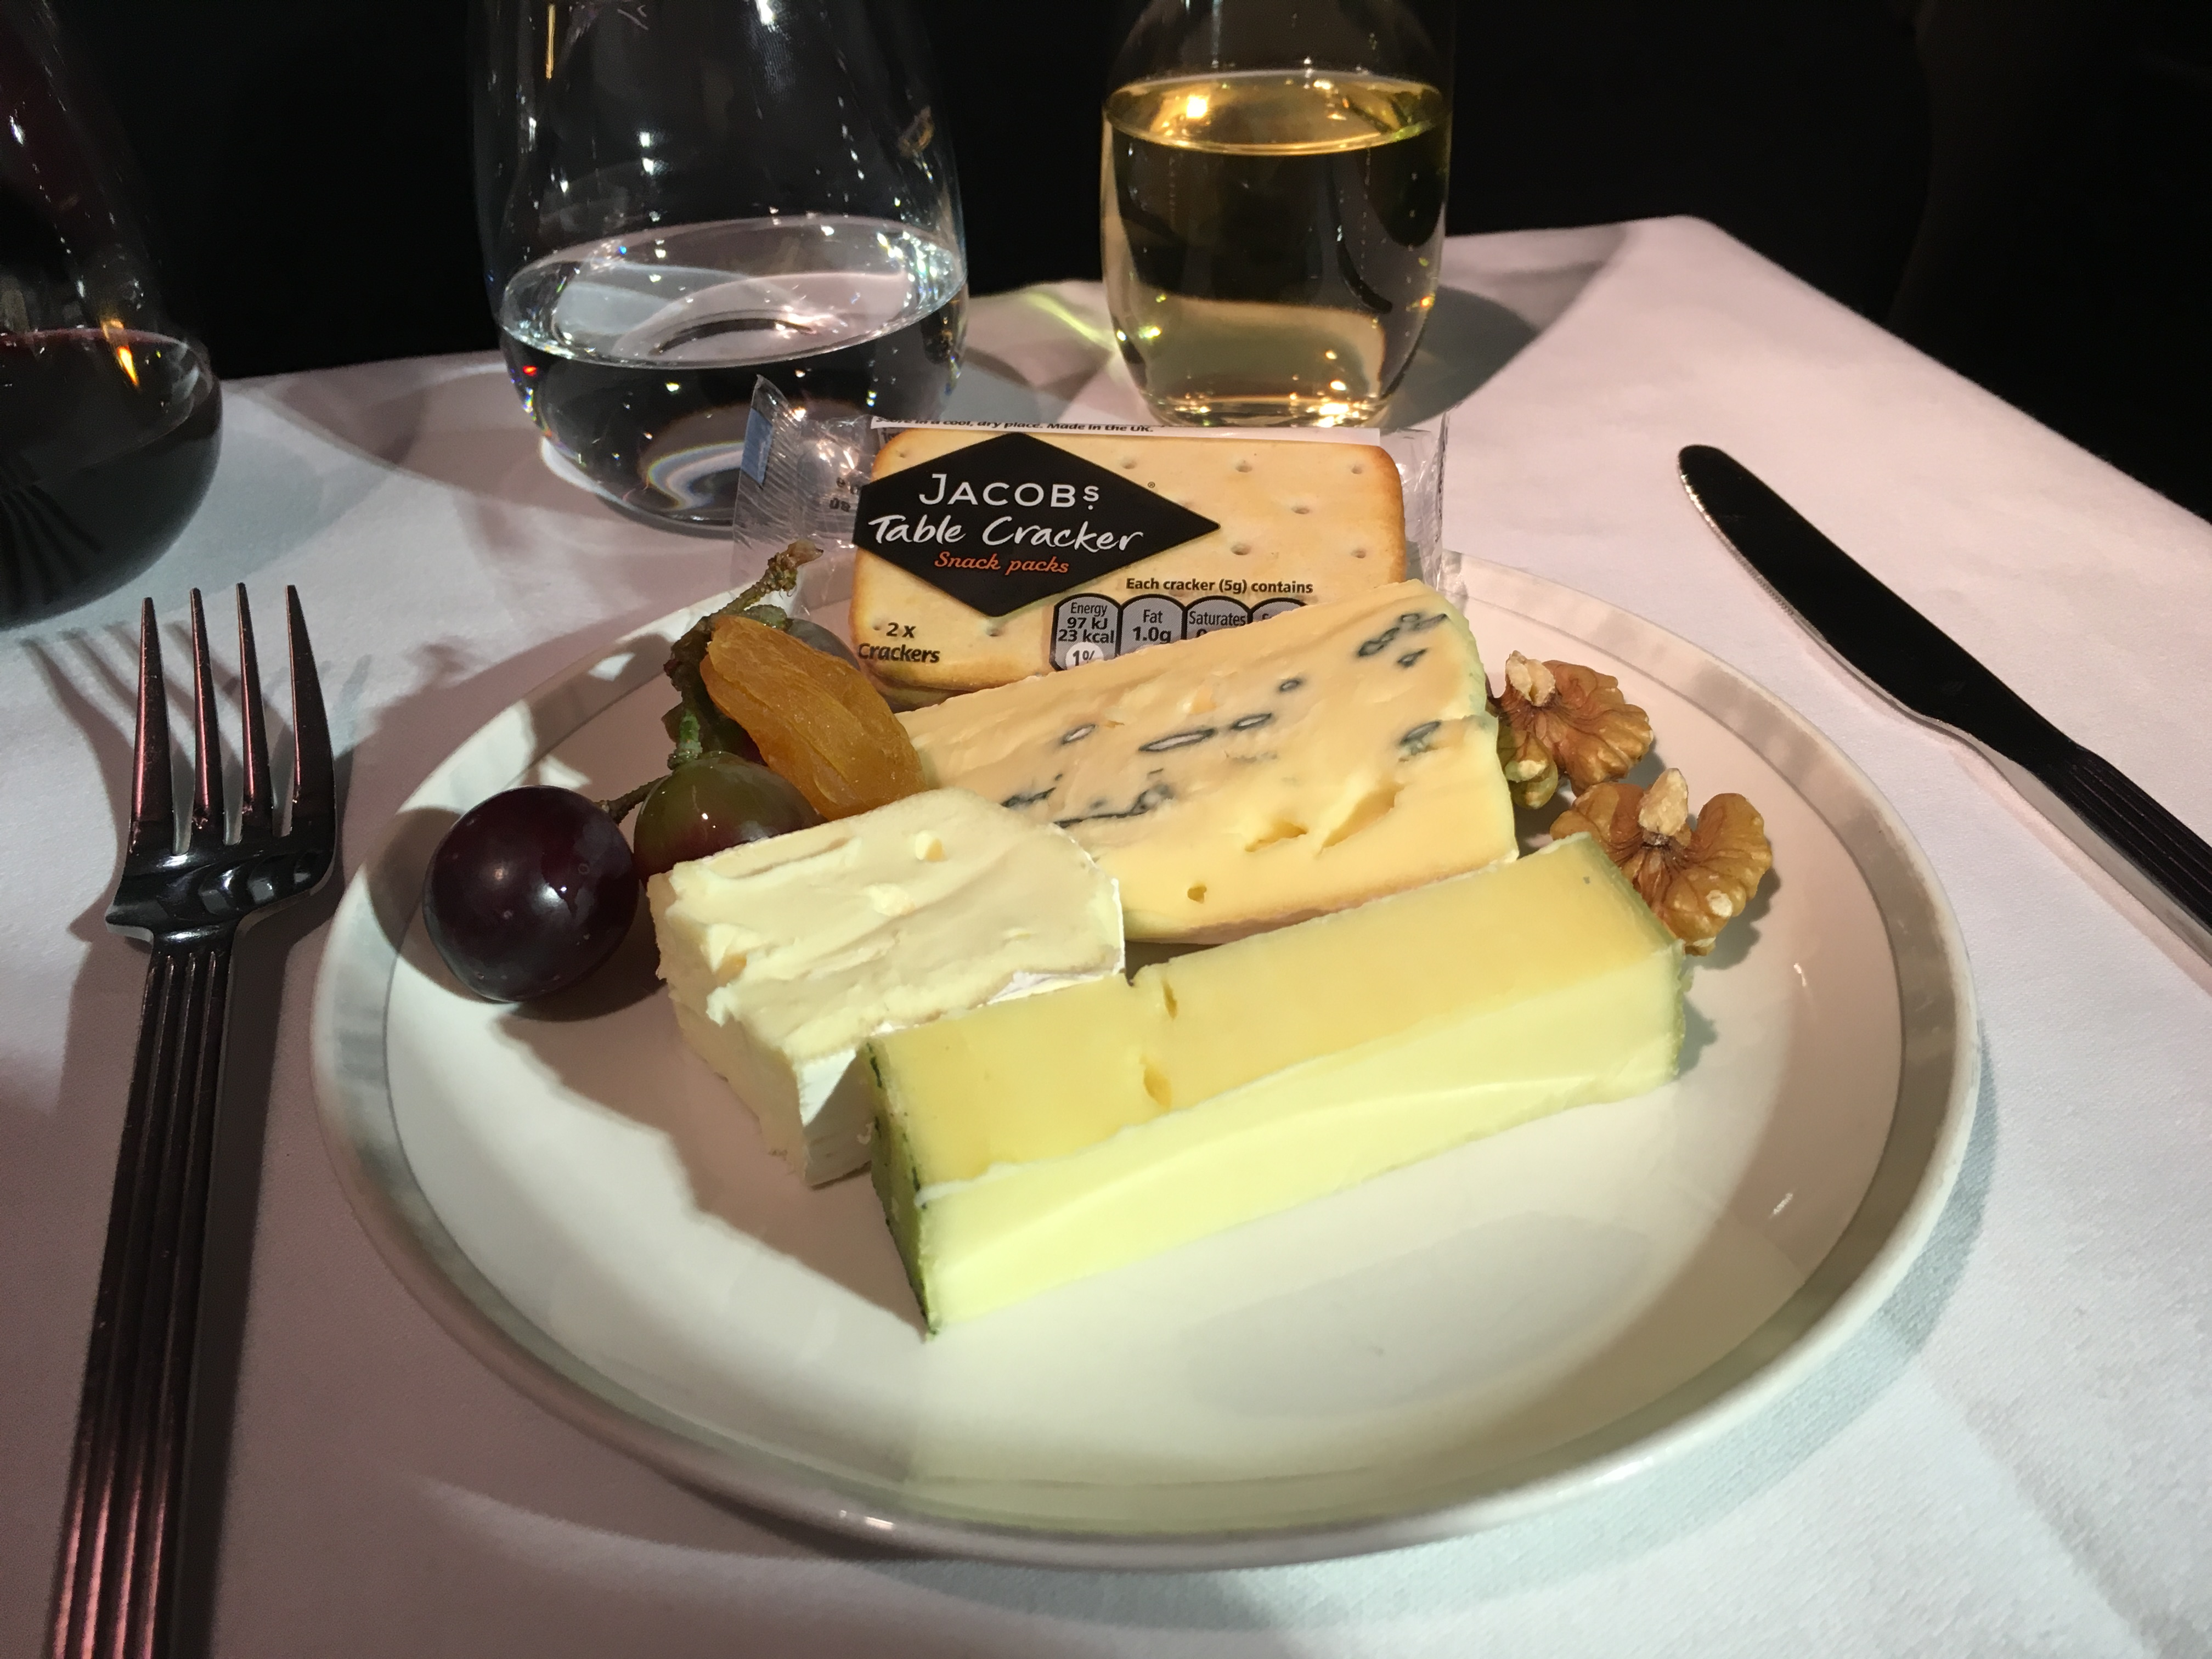 SIA Business Class Cheese